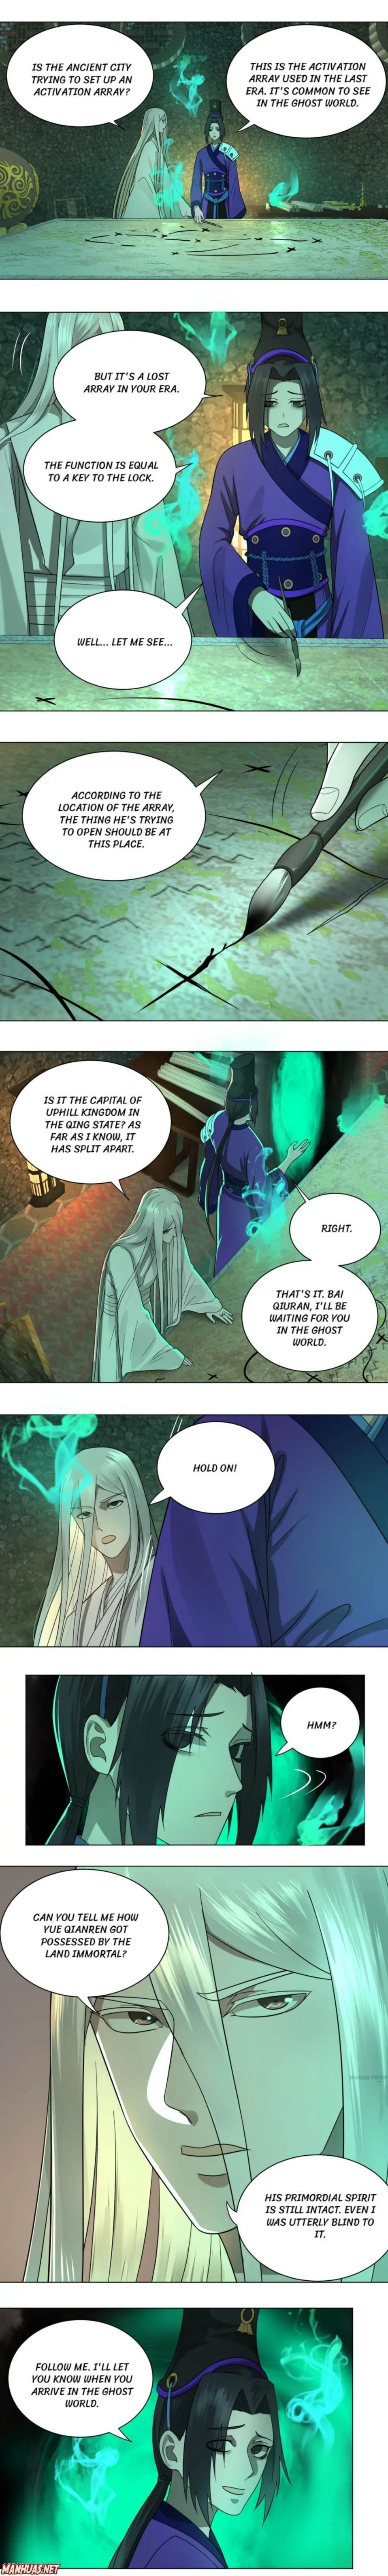 Manga My Three Thousand Years To The Sky - Chapter 68 Page 1